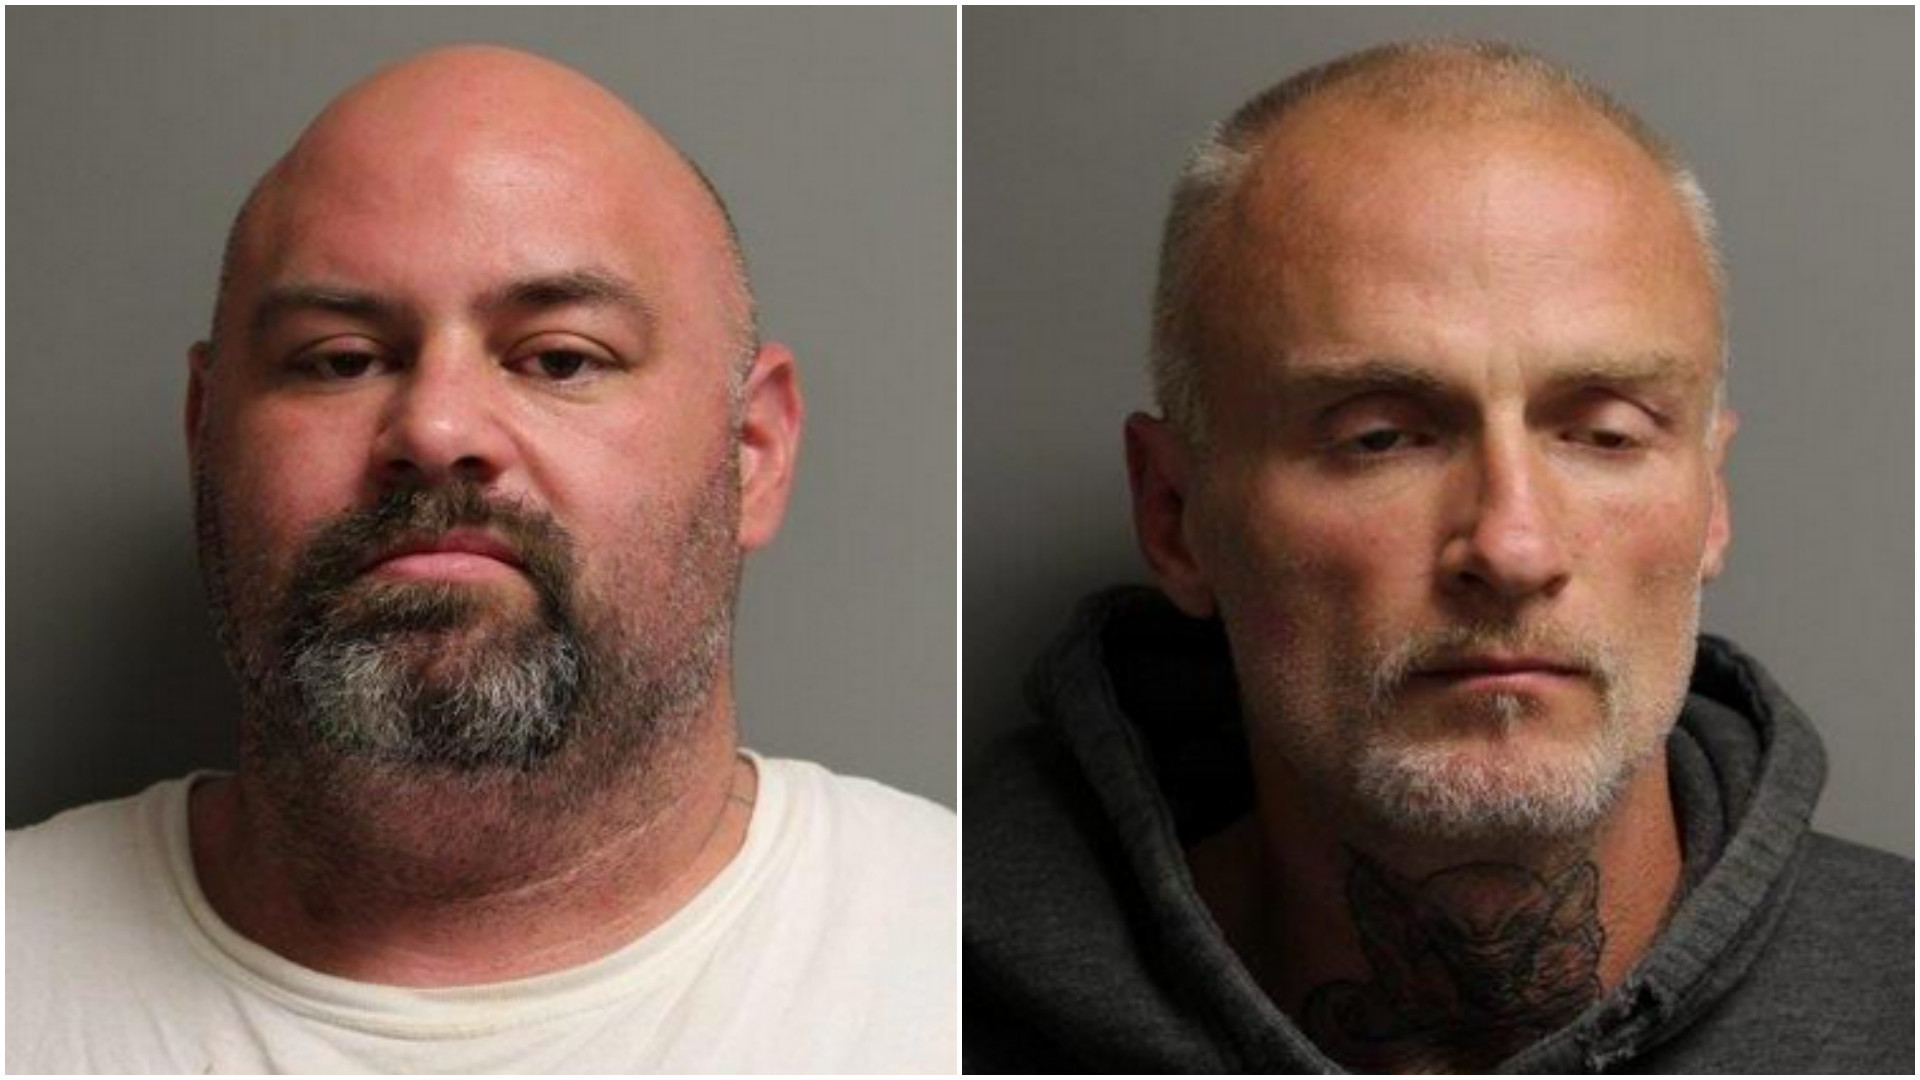 Rosemont officials to seek termination of police sergeant charged in Park Ridge and Norridge armed robberies | Chicago Tribune